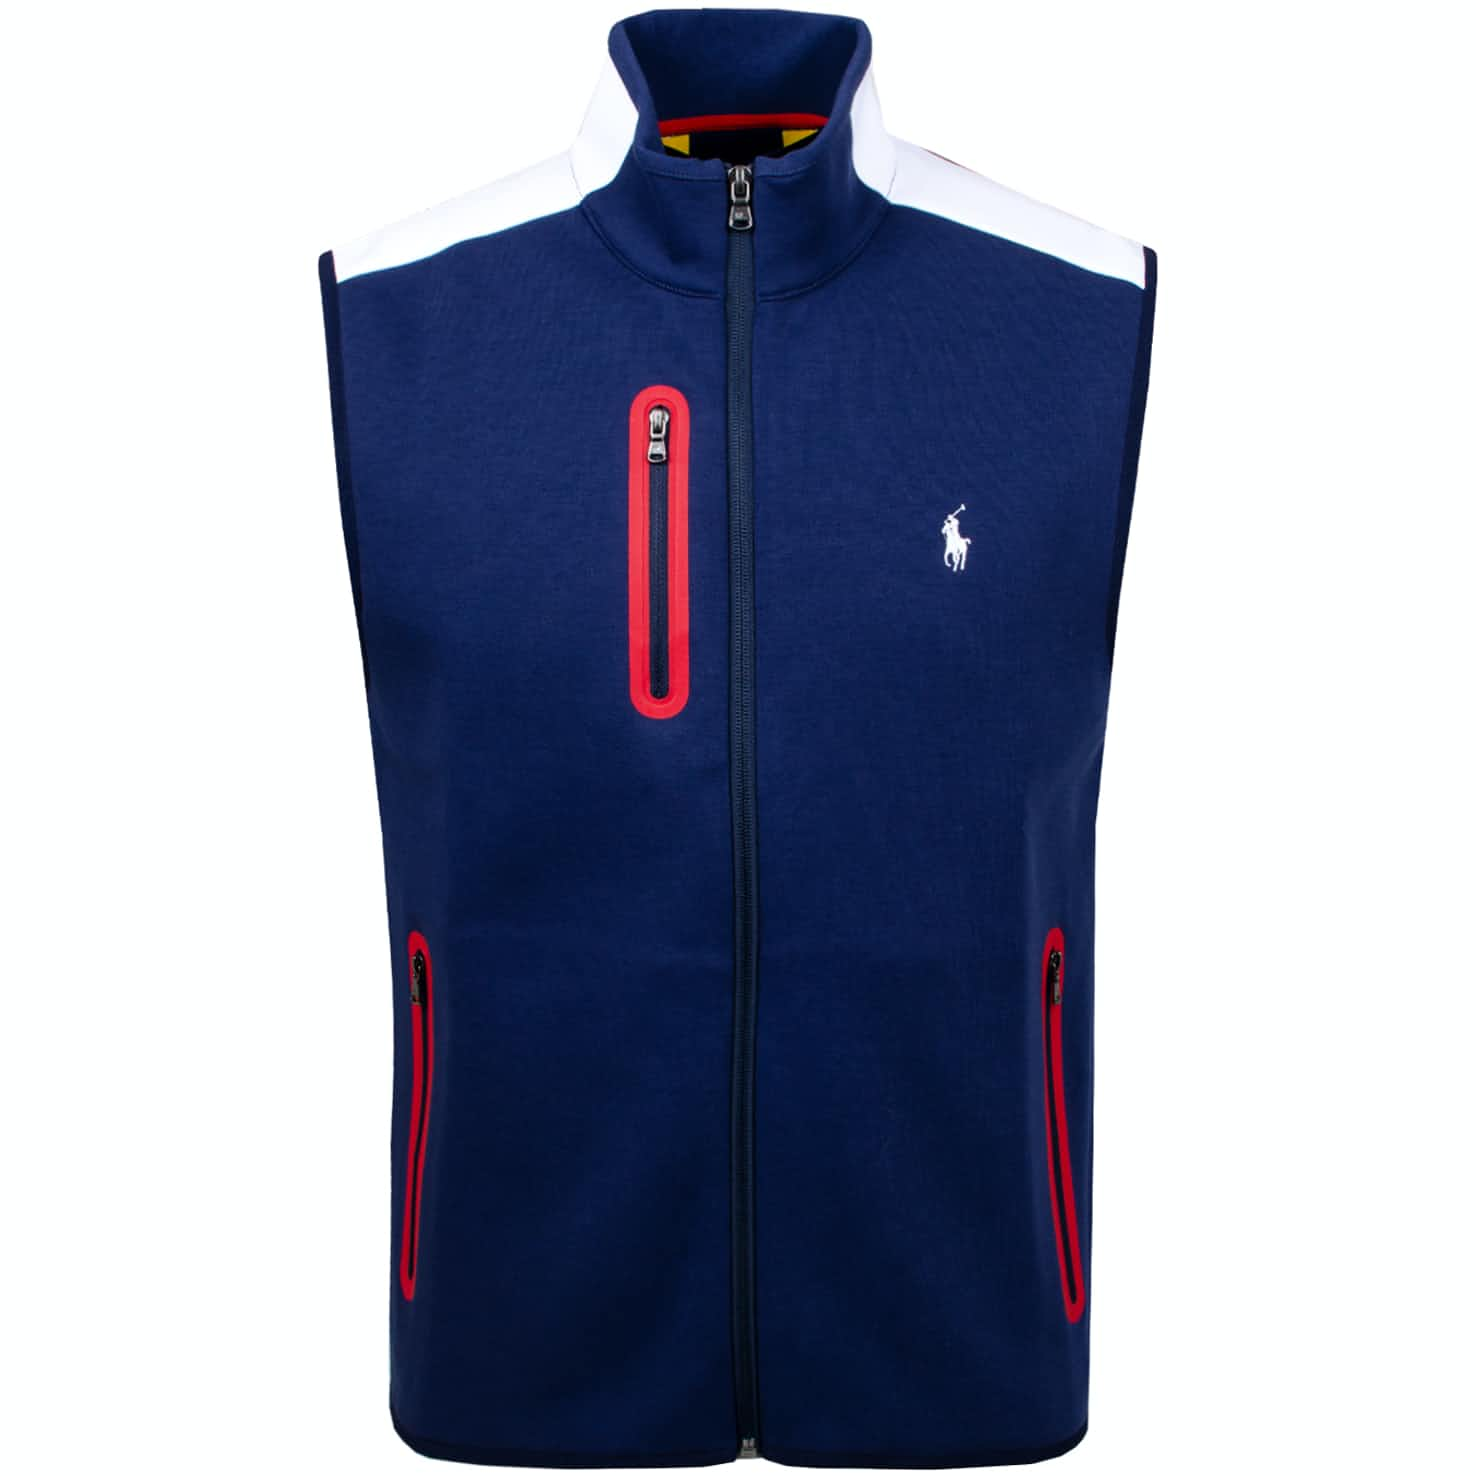 x Justin Thomas Double Knit Vest French Navy - AW19